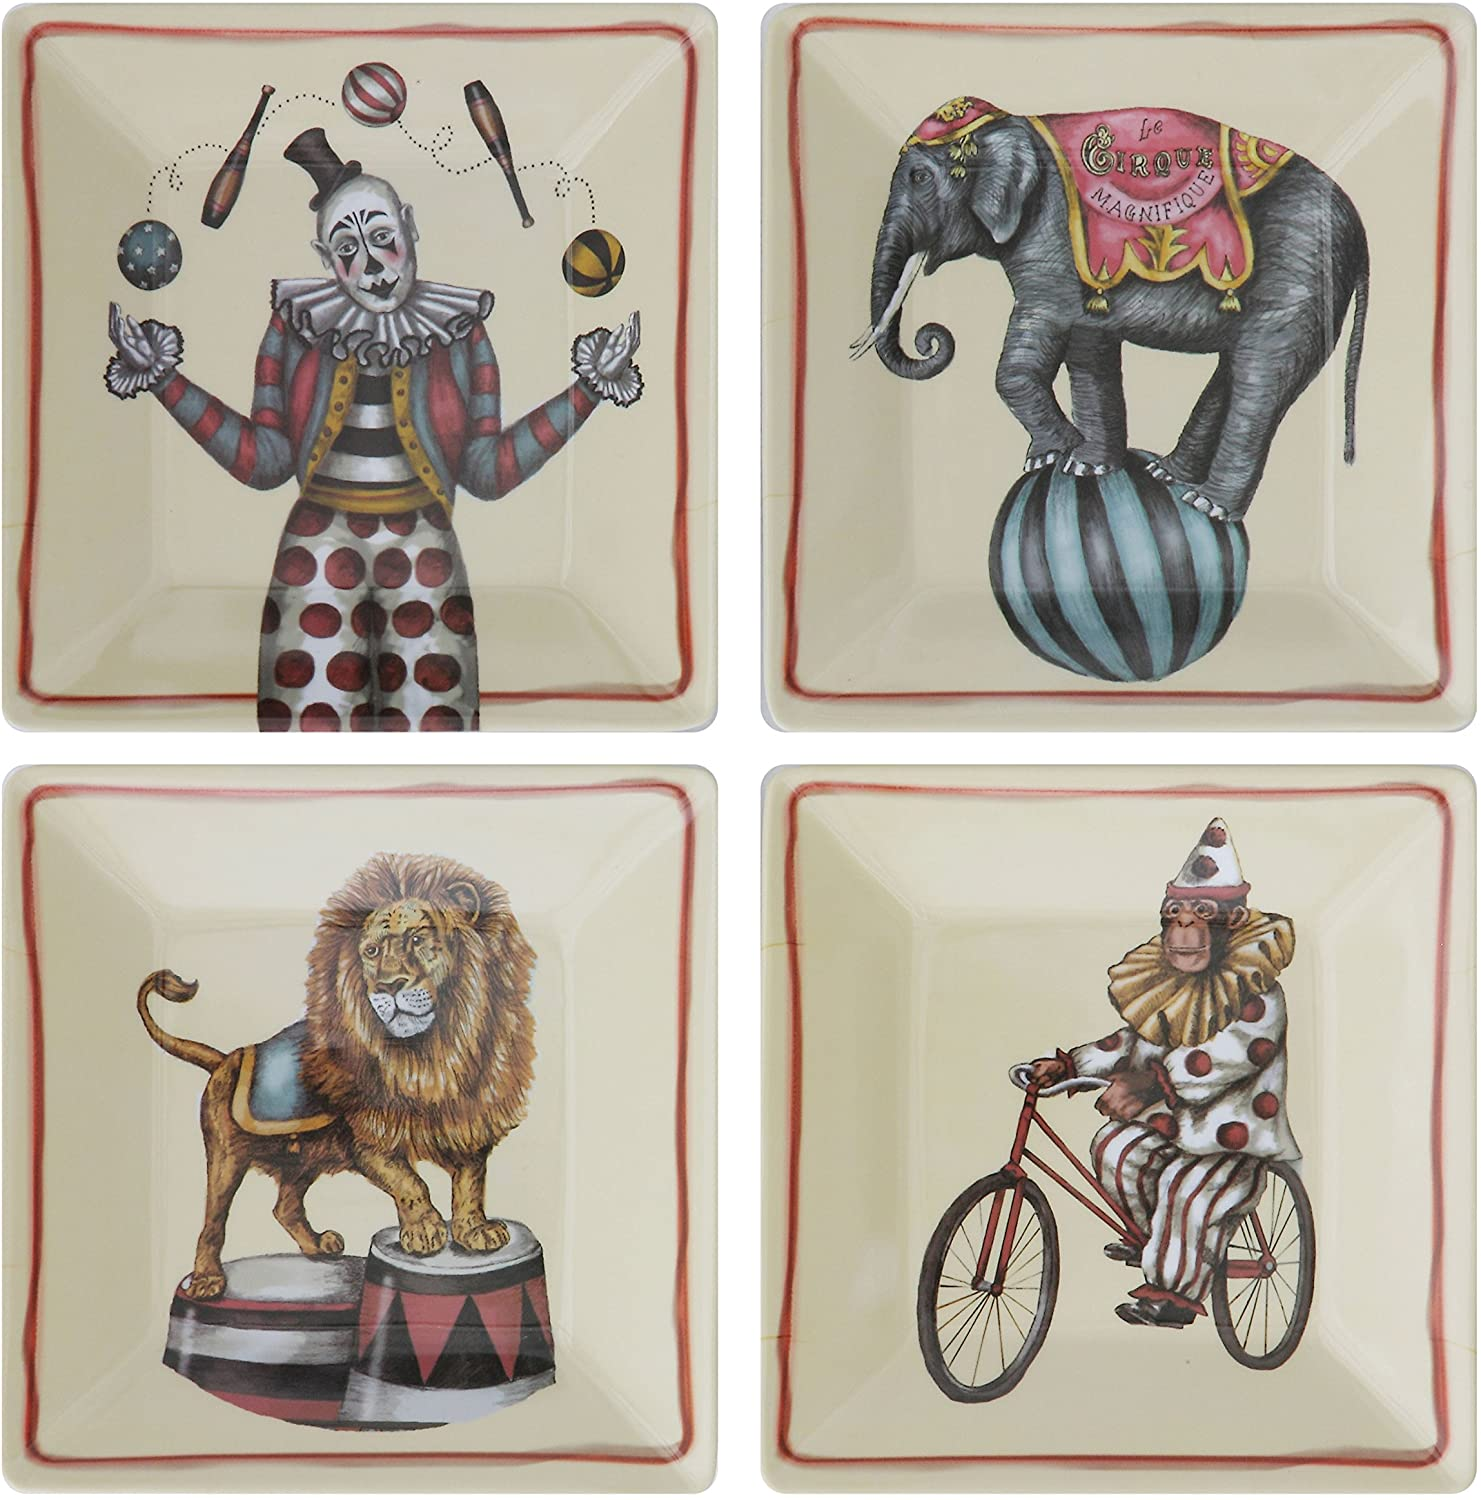 Creative Co-Op Circus Plates, Set of 4 Styles